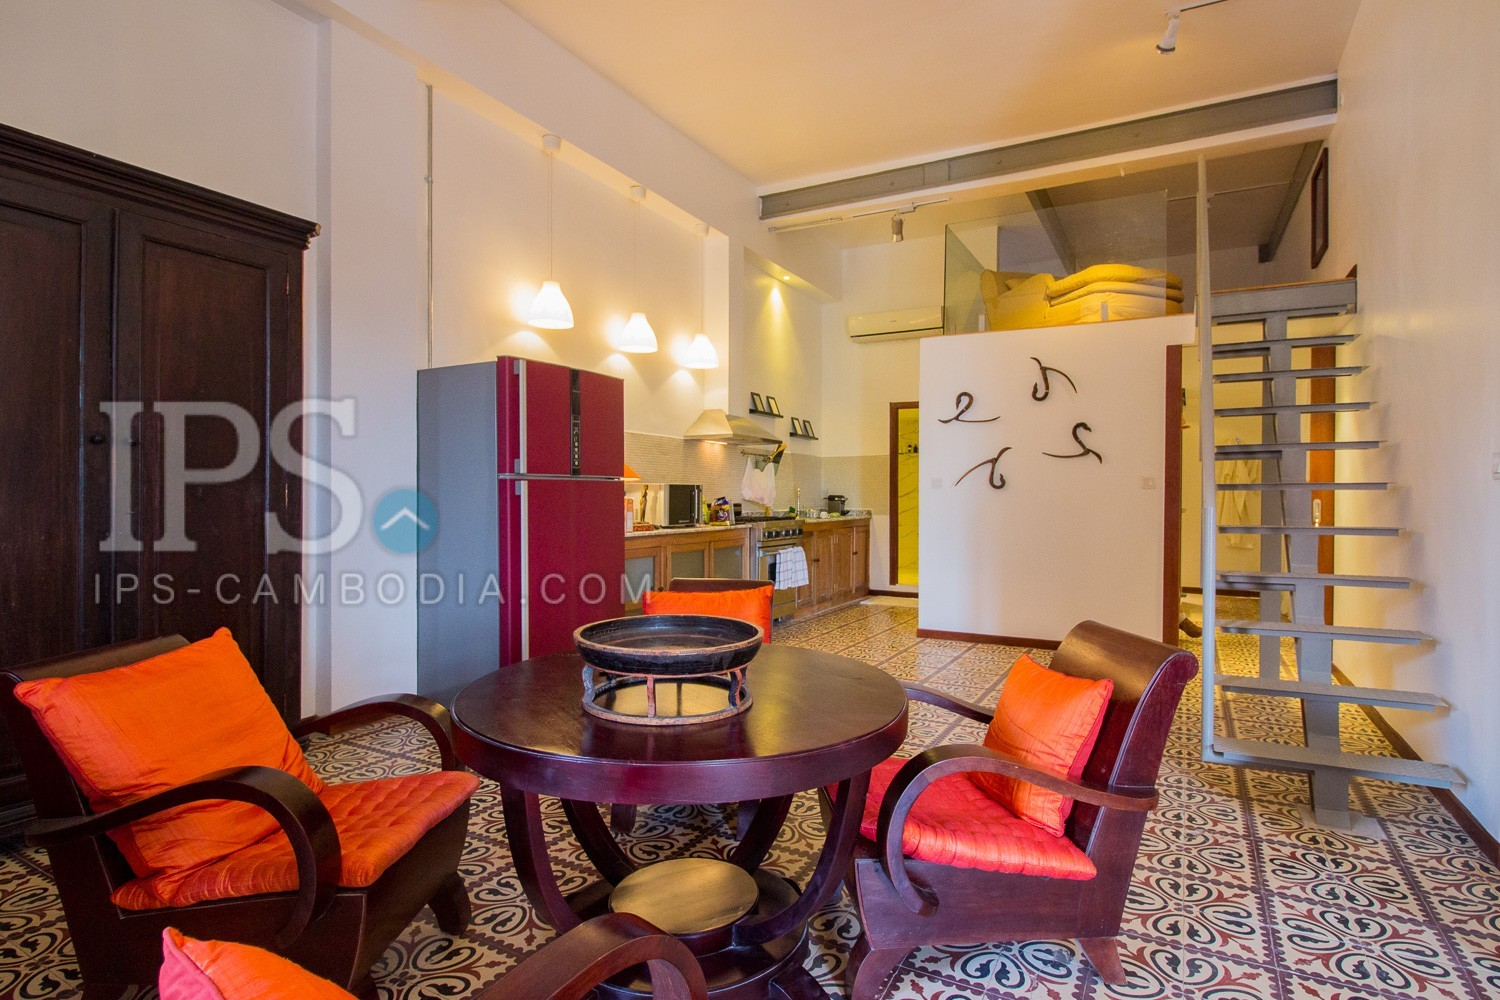 Apartment For Sale in Phnom Penh - Two Bedroom in Daun Penh